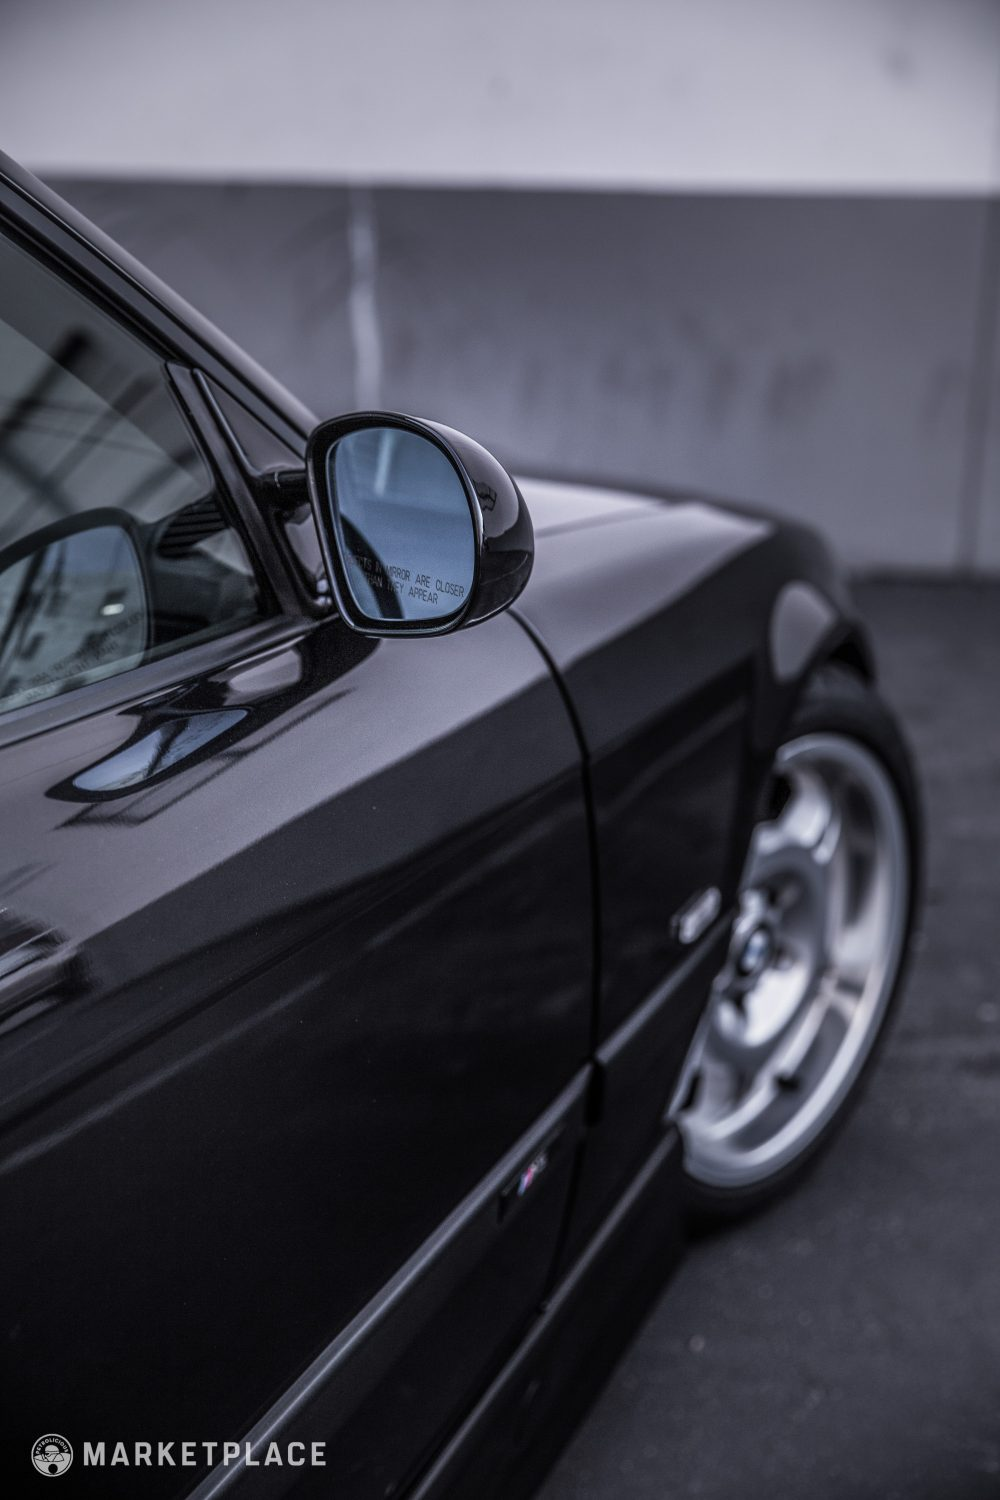 Bmw M3 Coupe 1999 : coupe, 2-Owner, Included, Petrolicious